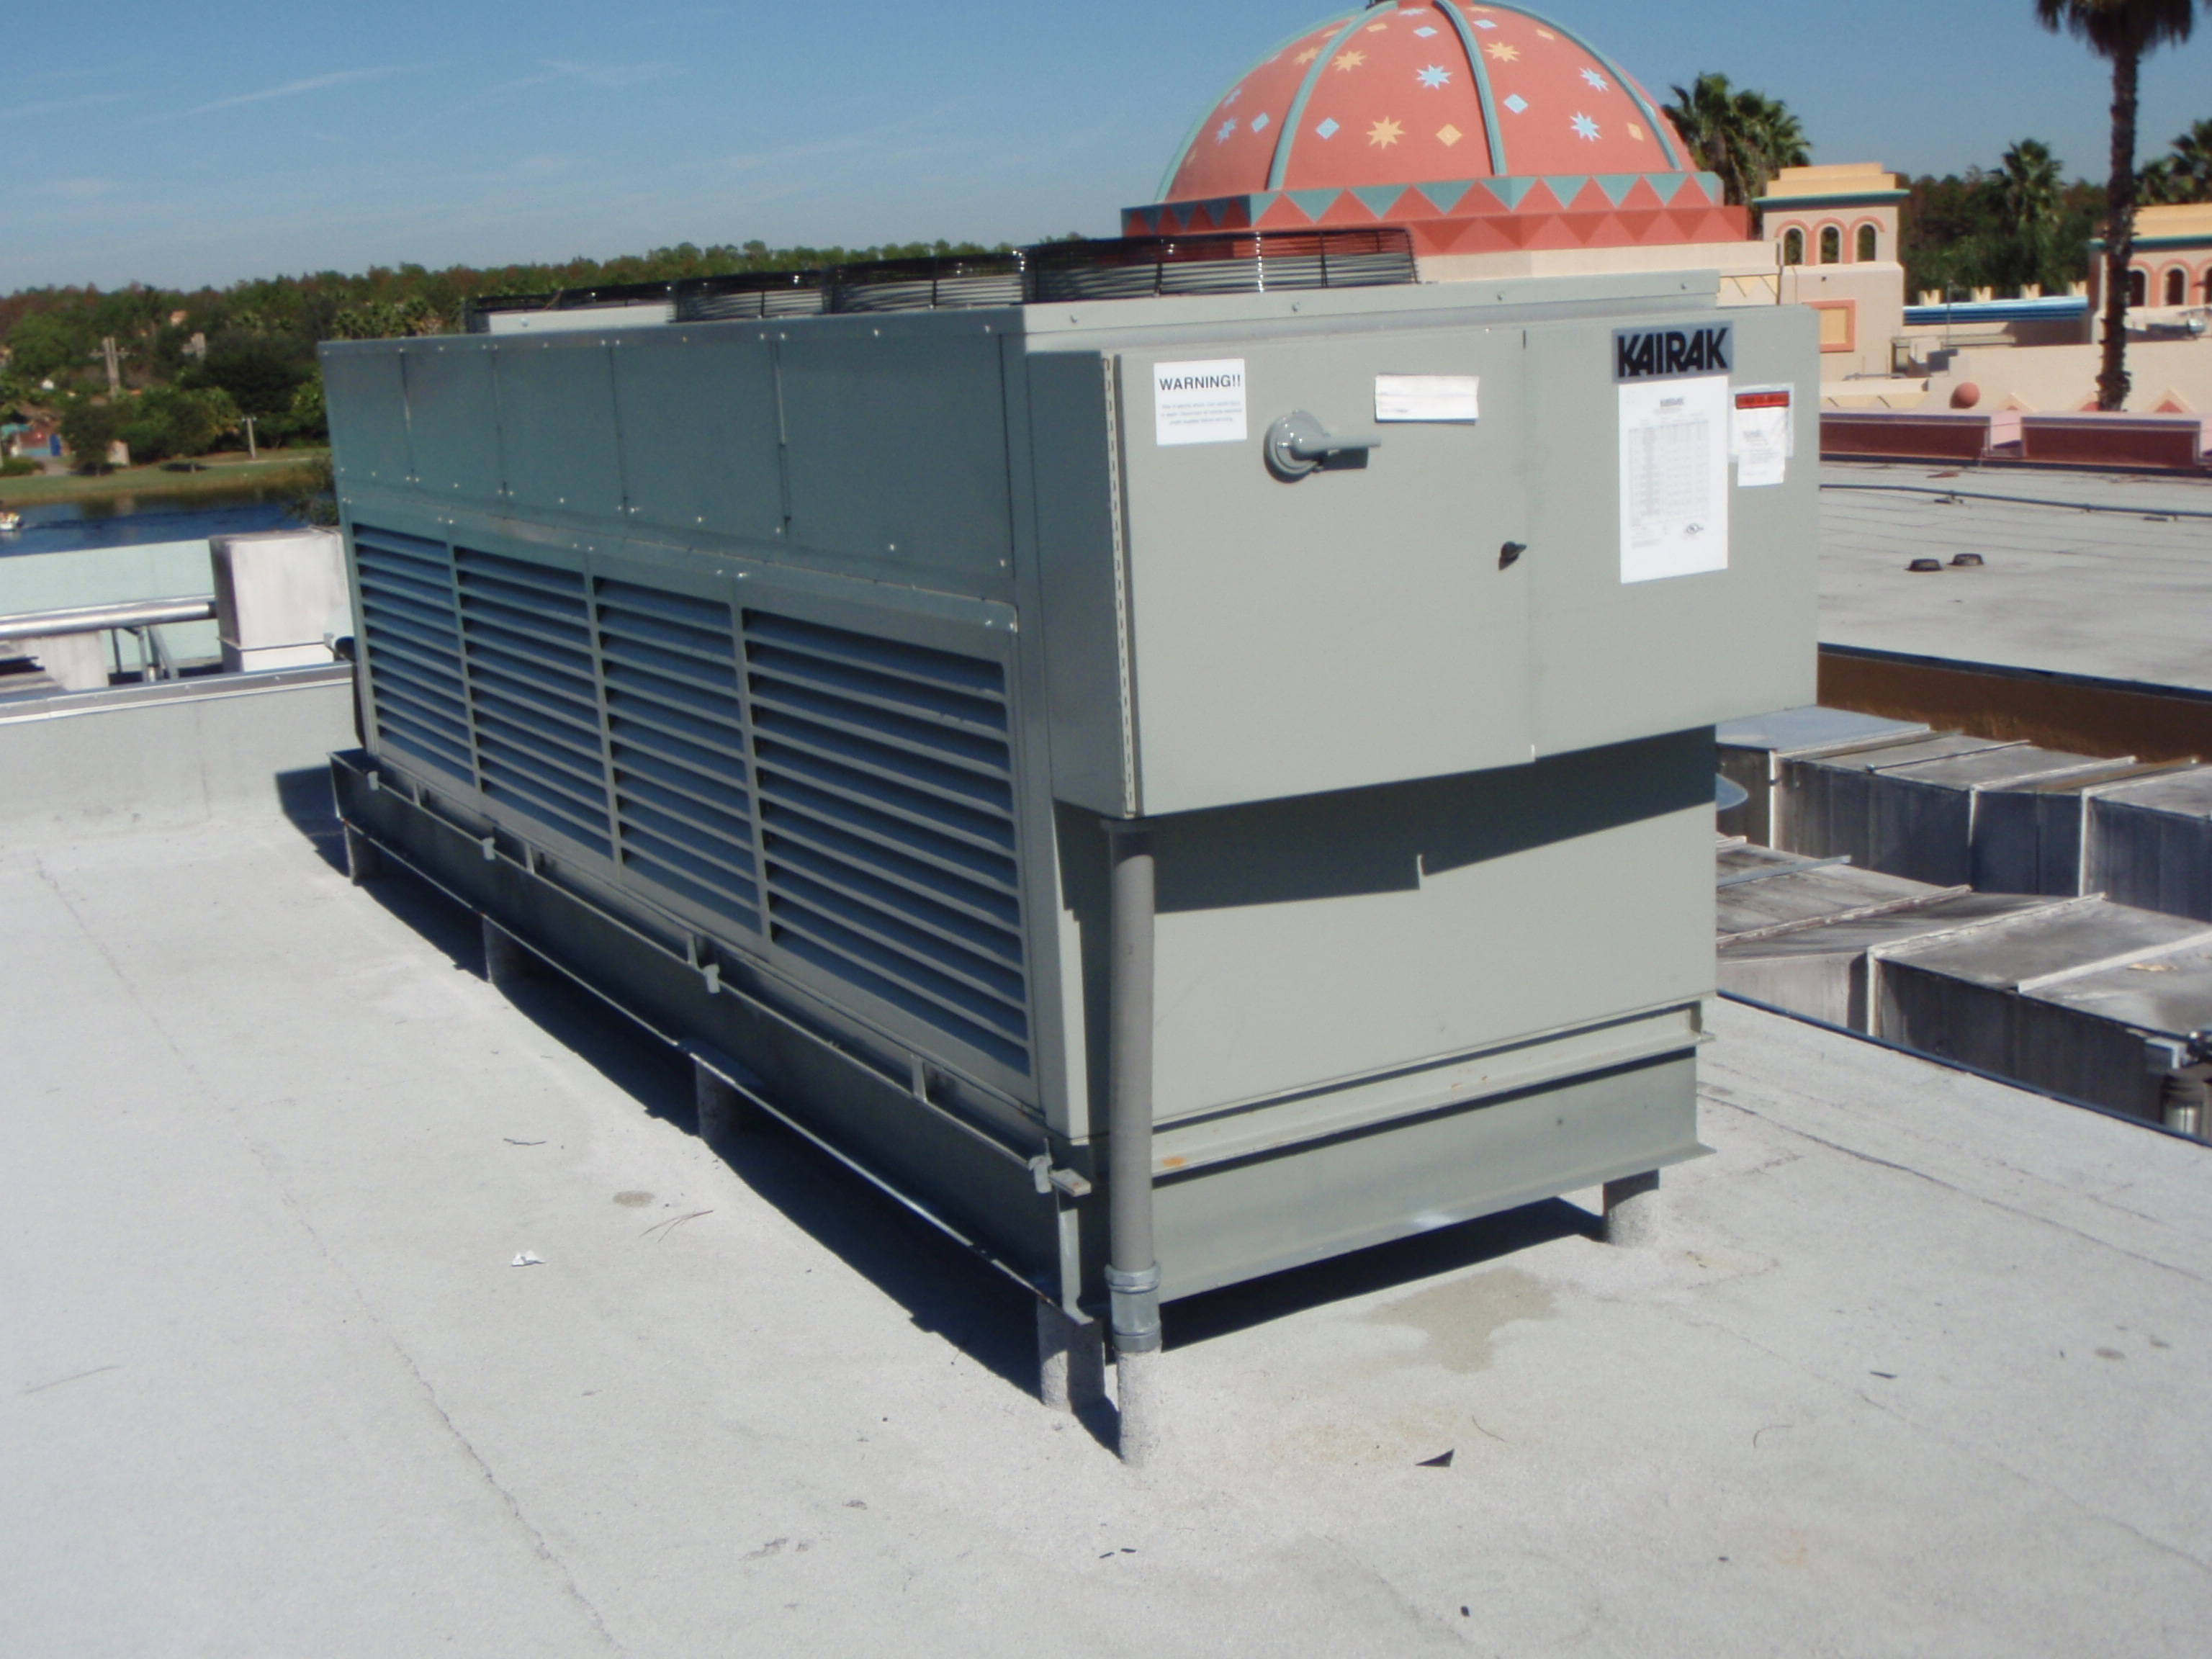 Commercial Air Conditioning Refrigeration Clermont Marathon Air #8F4A3C